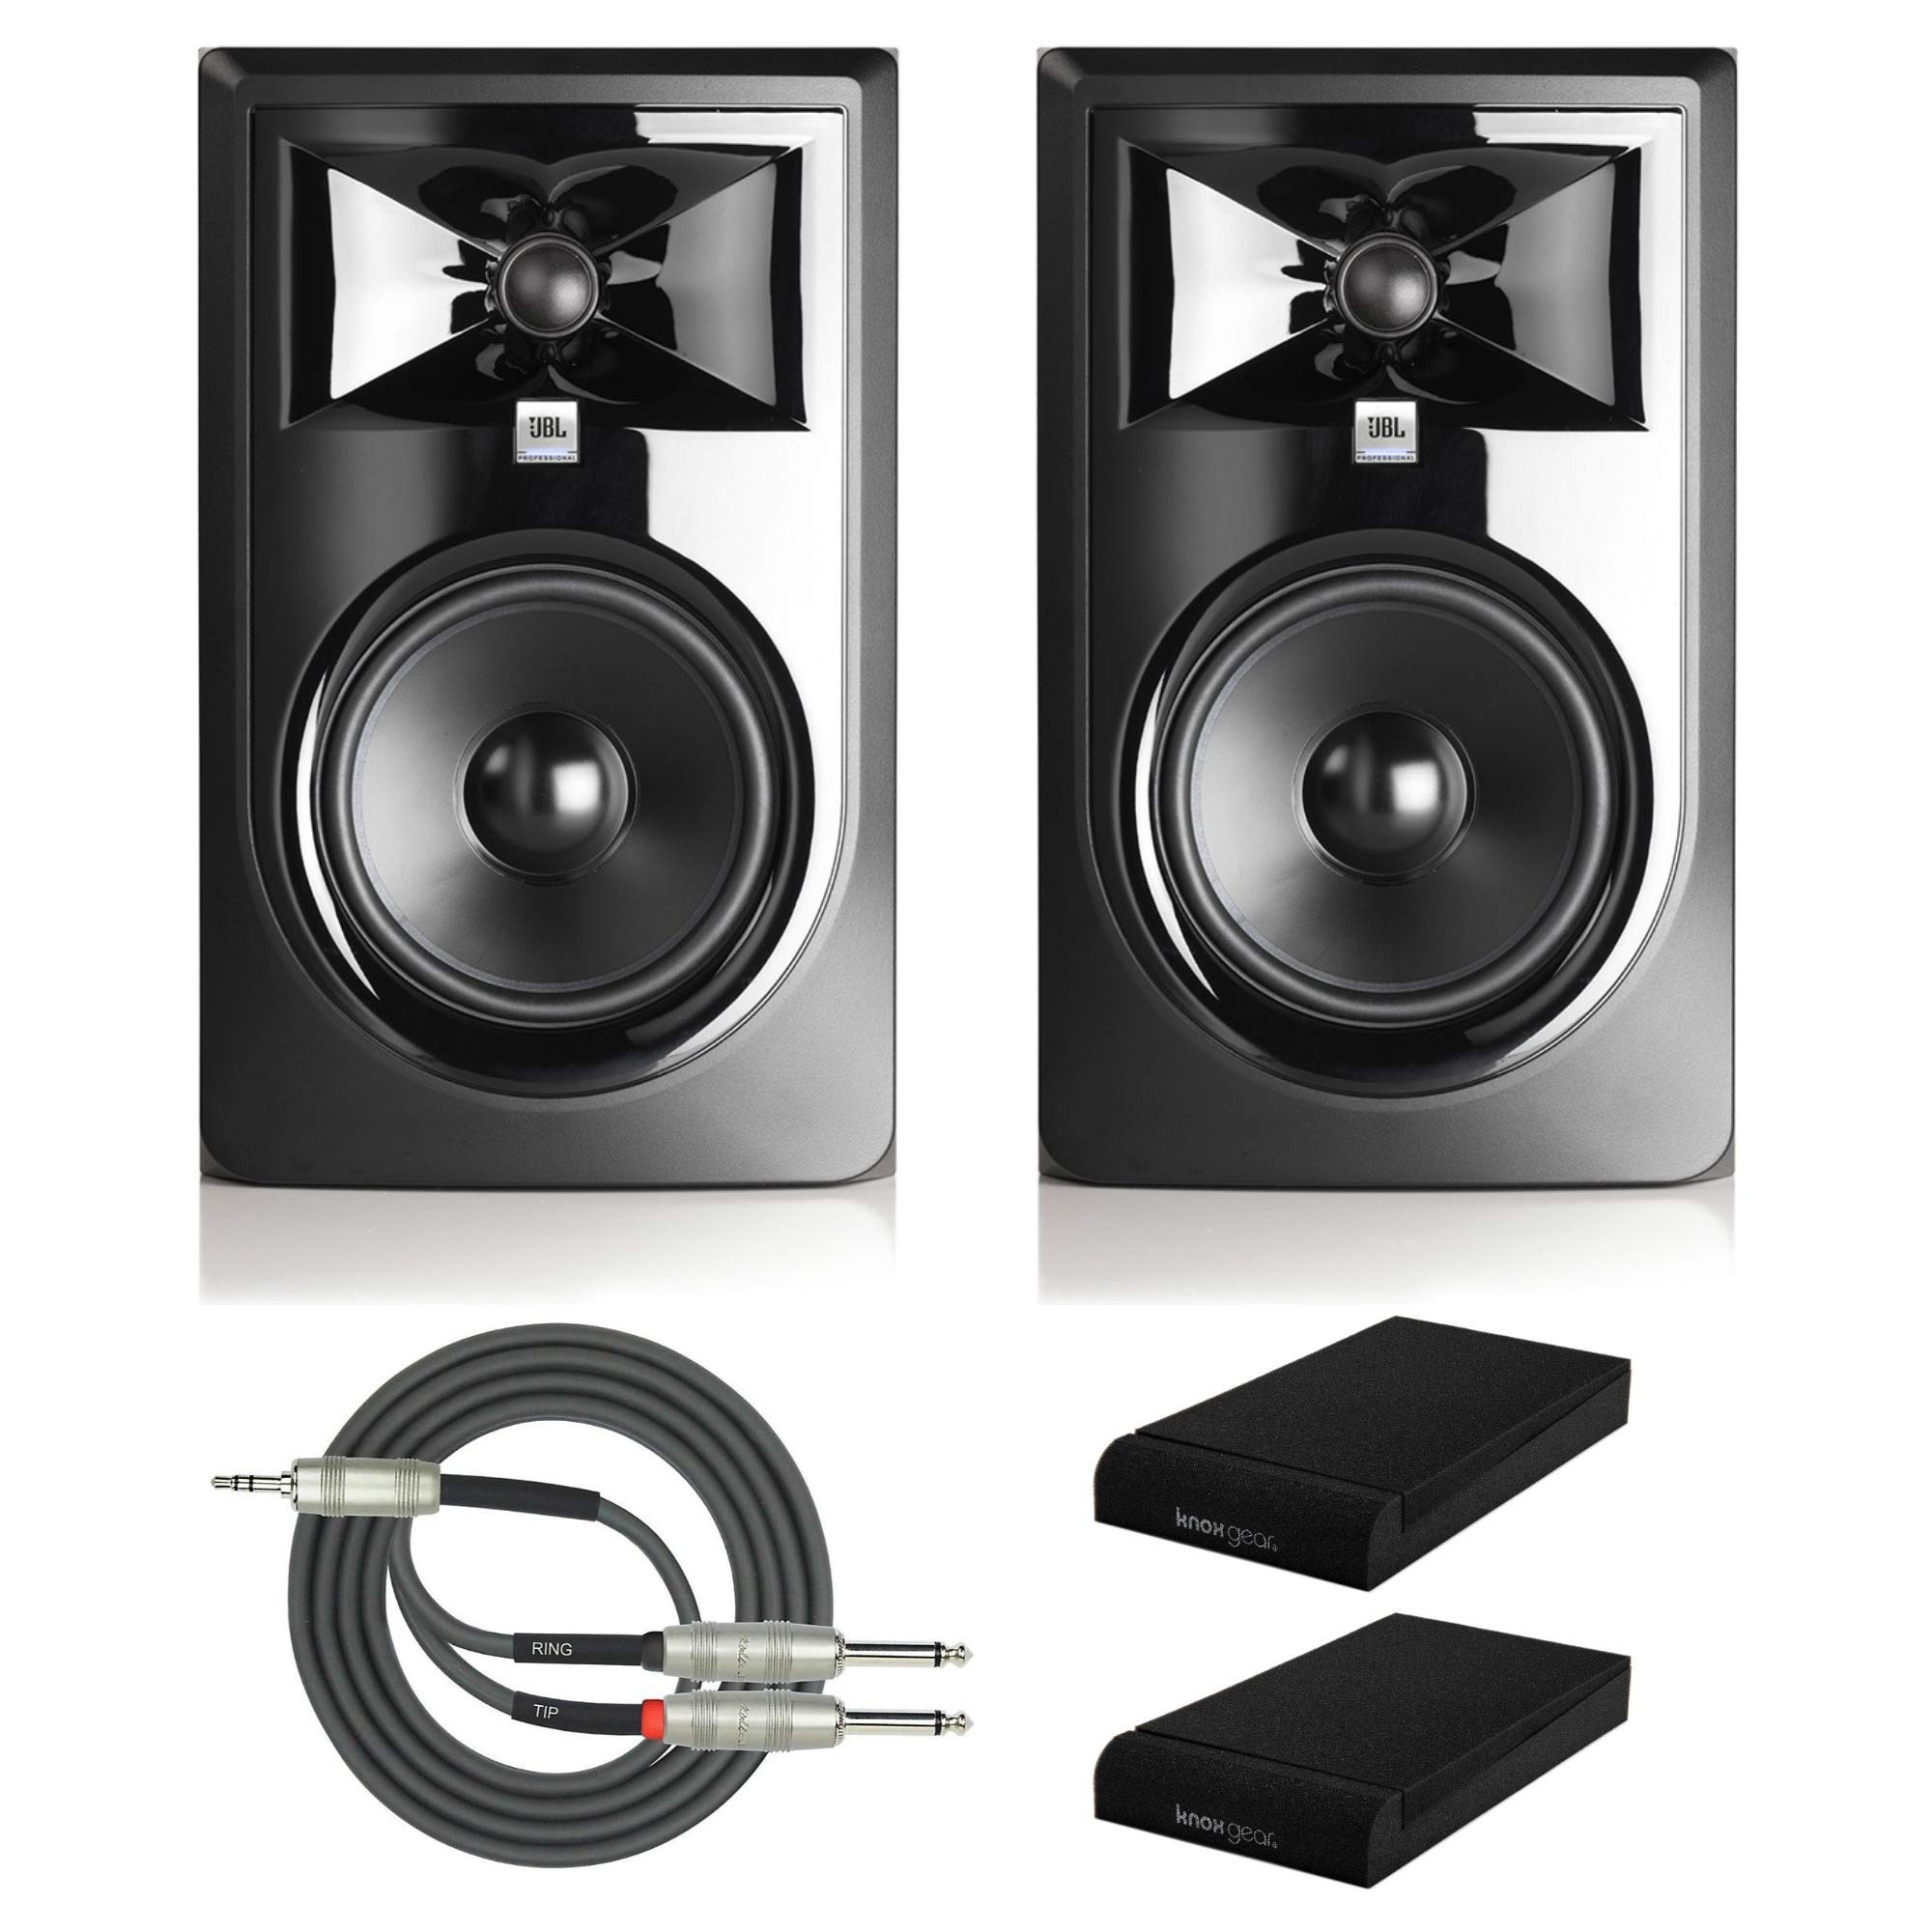 JBL 305P MkII Powered 5'' Two-Way Studio Monitors (Pair) with Knox Gear Isolation Pads and Breakout Cable Bundle